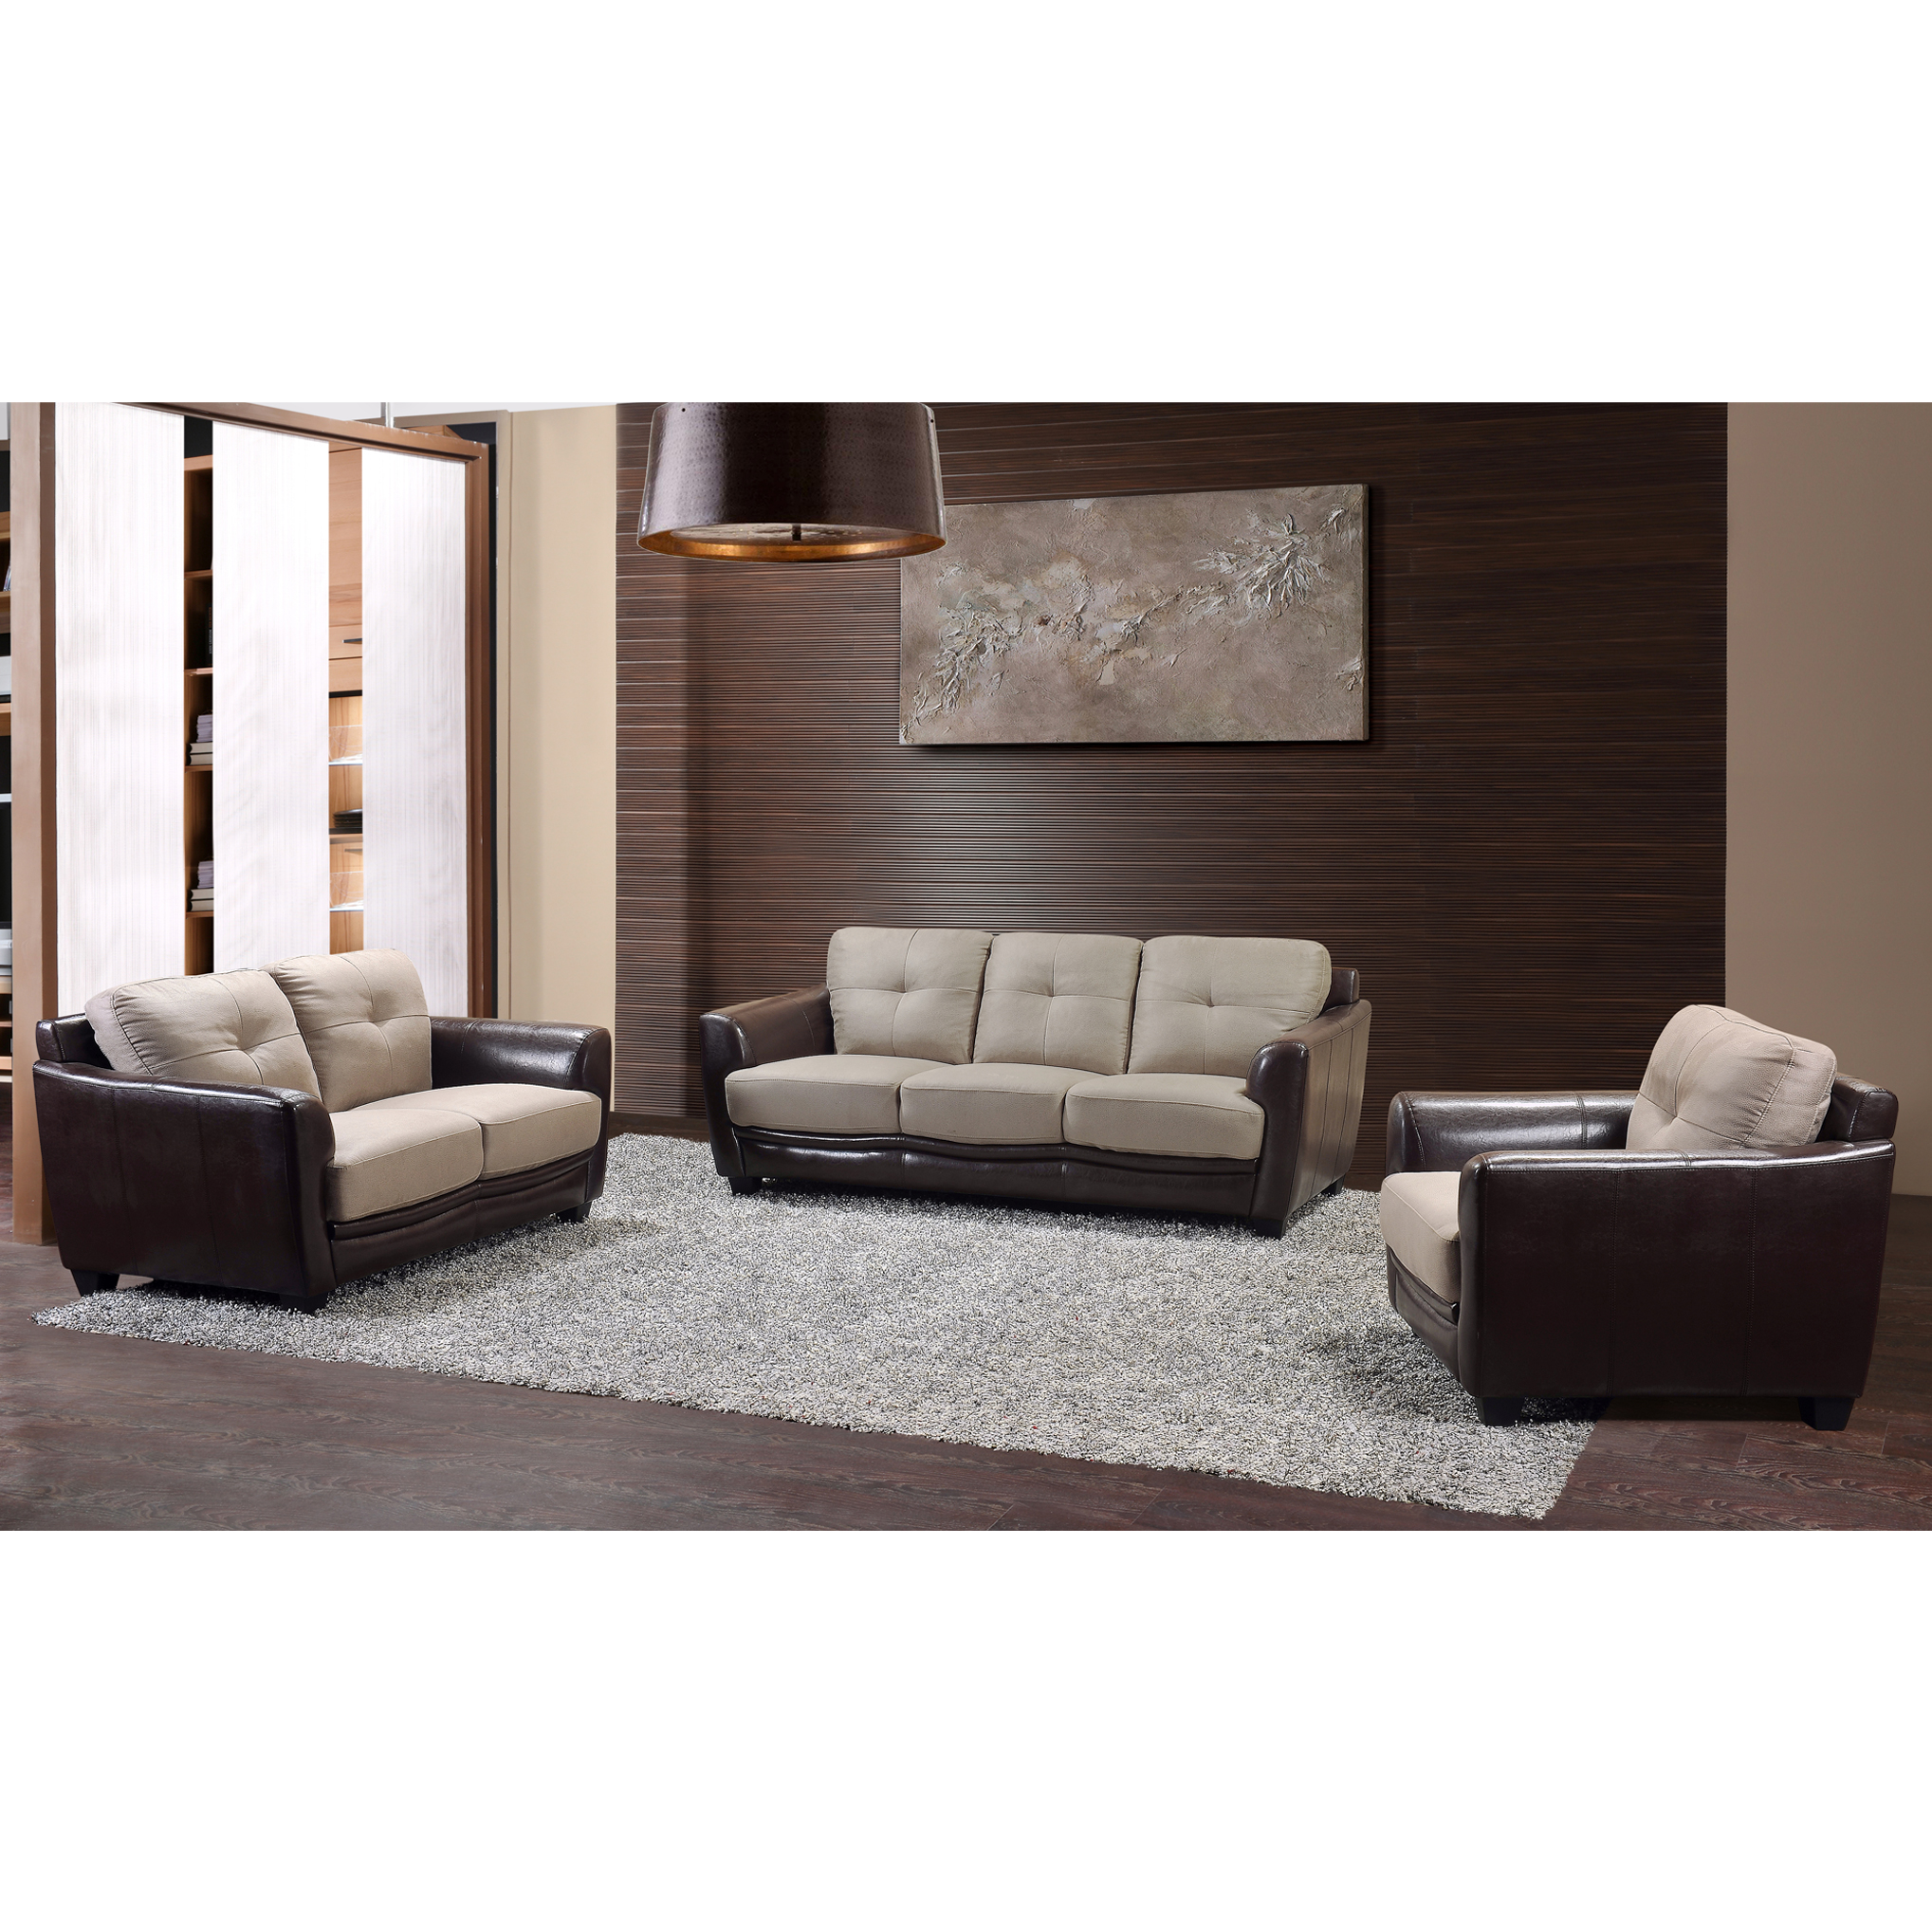 sofa 3 2 brand new candy sofas 3 2 seater sofa set or. Black Bedroom Furniture Sets. Home Design Ideas